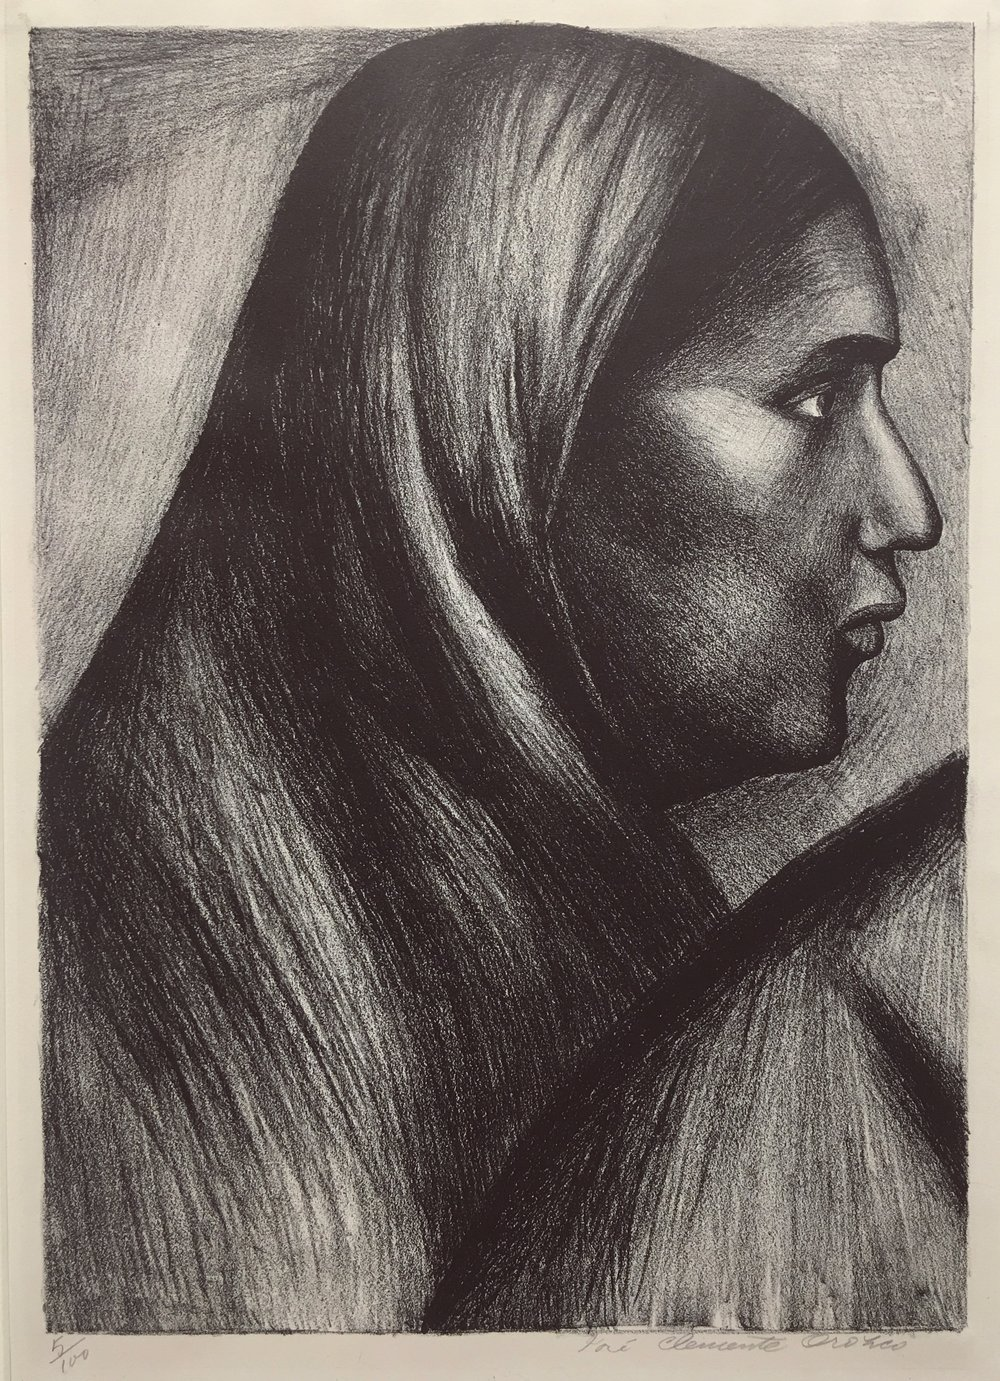 Jose Clemente Orozco Title  Mujer Mexicana Medium  Lithograph  Date  1929  Size 35.5 x 24.7cm  Courtesy of Bond Latin Gallery copy.jpg